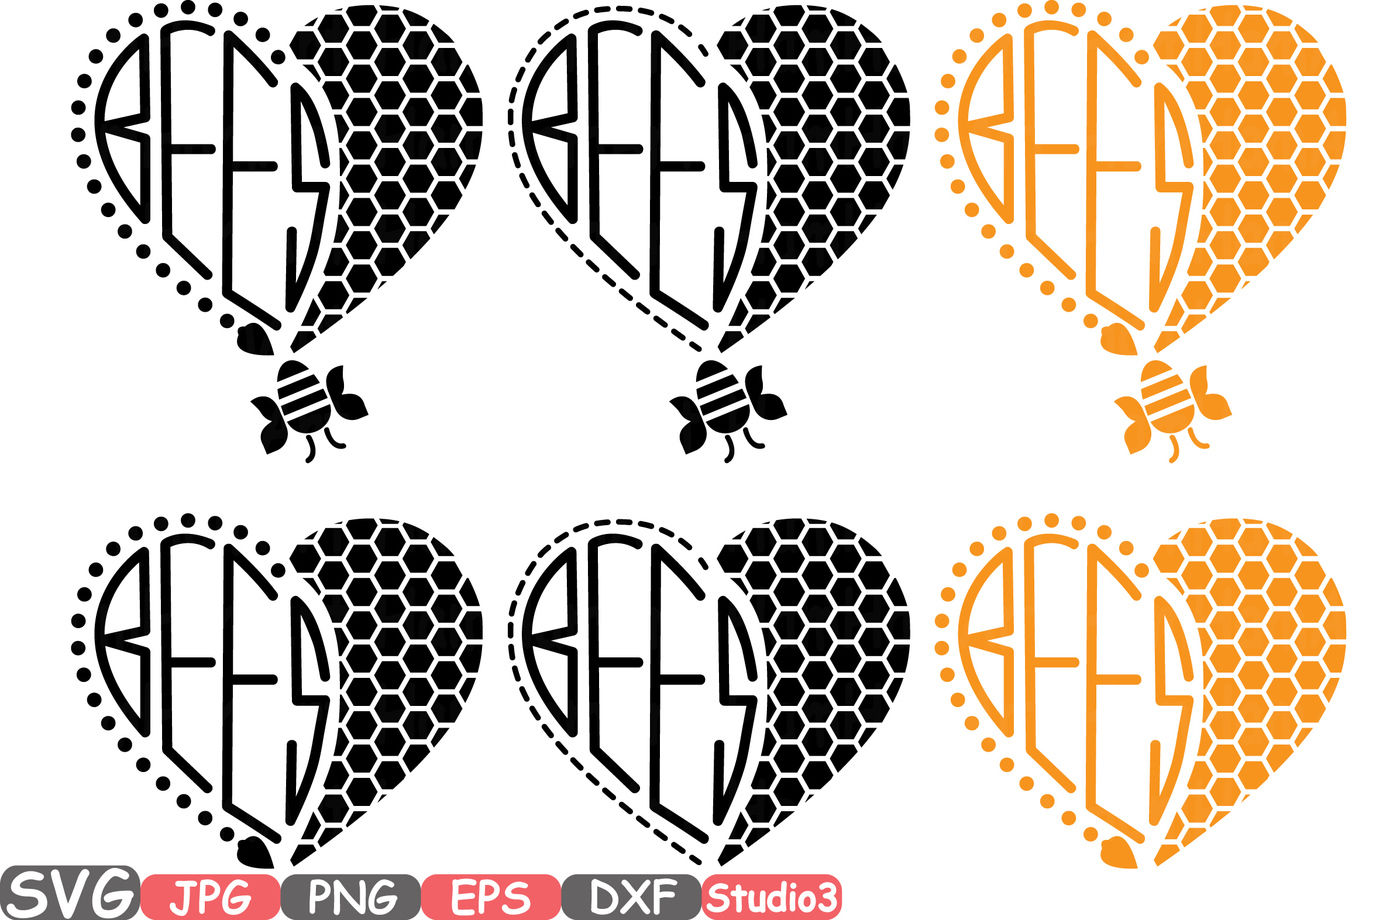 Bumble Bee Bees Honey Heart Silhouette Svg Cutting Files Digital